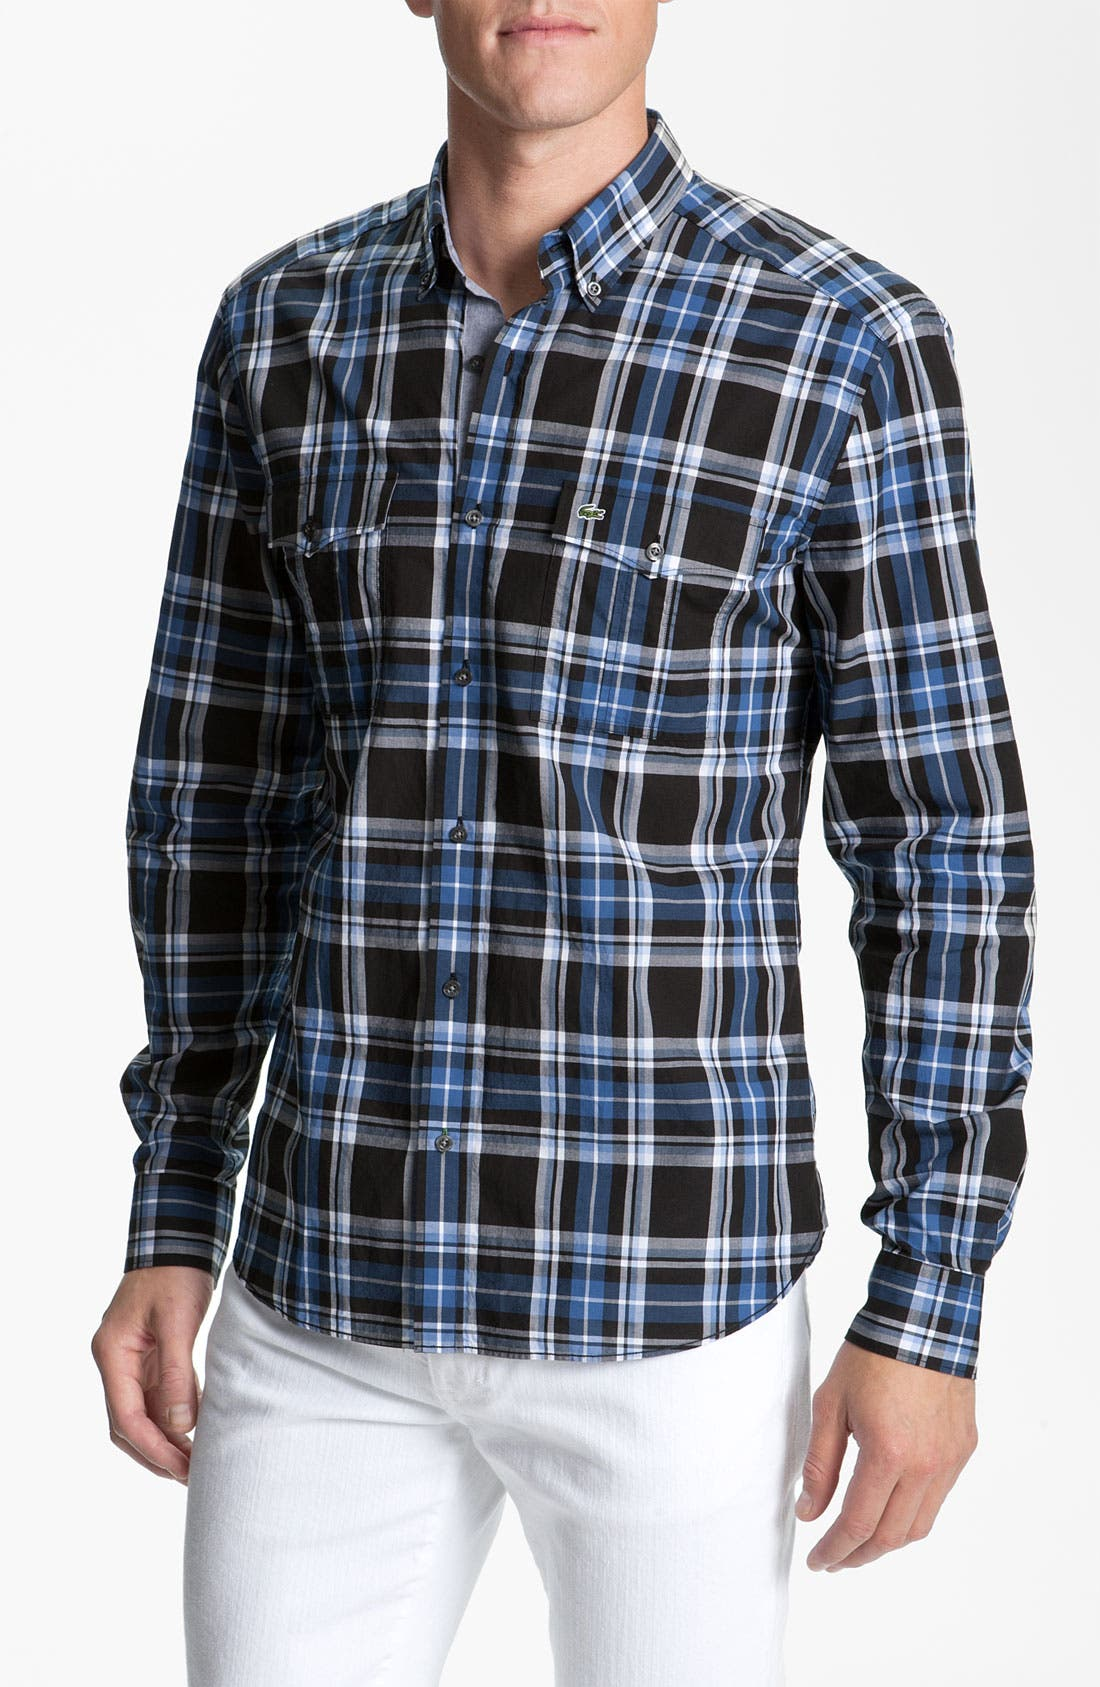 Alternate Image 1 Selected - Lacoste Slim Fit Plaid Sport Shirt